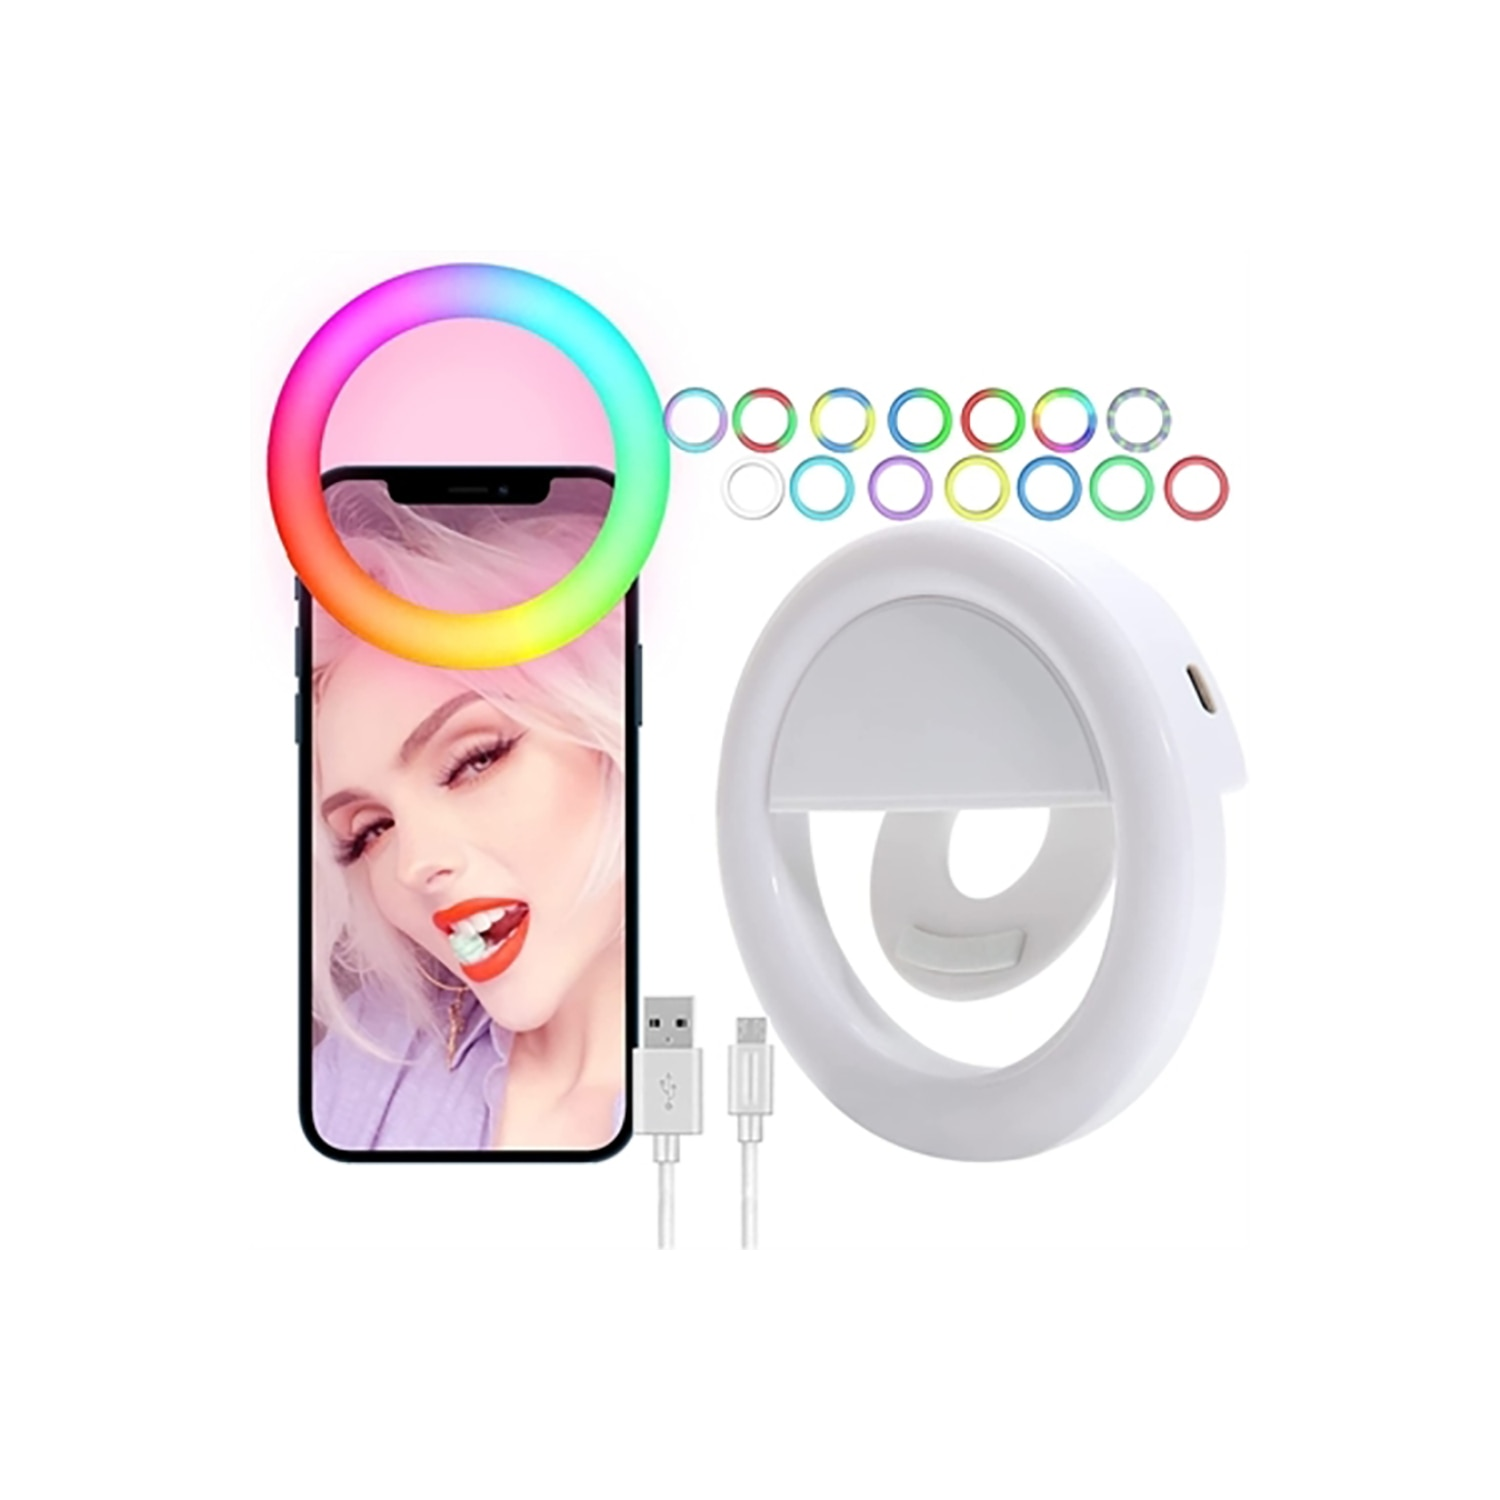 Clip-On Multi Color Selfie Light for your Smartphones. it has 16 color light modes, 3 LED's, and a rechargeable battery.